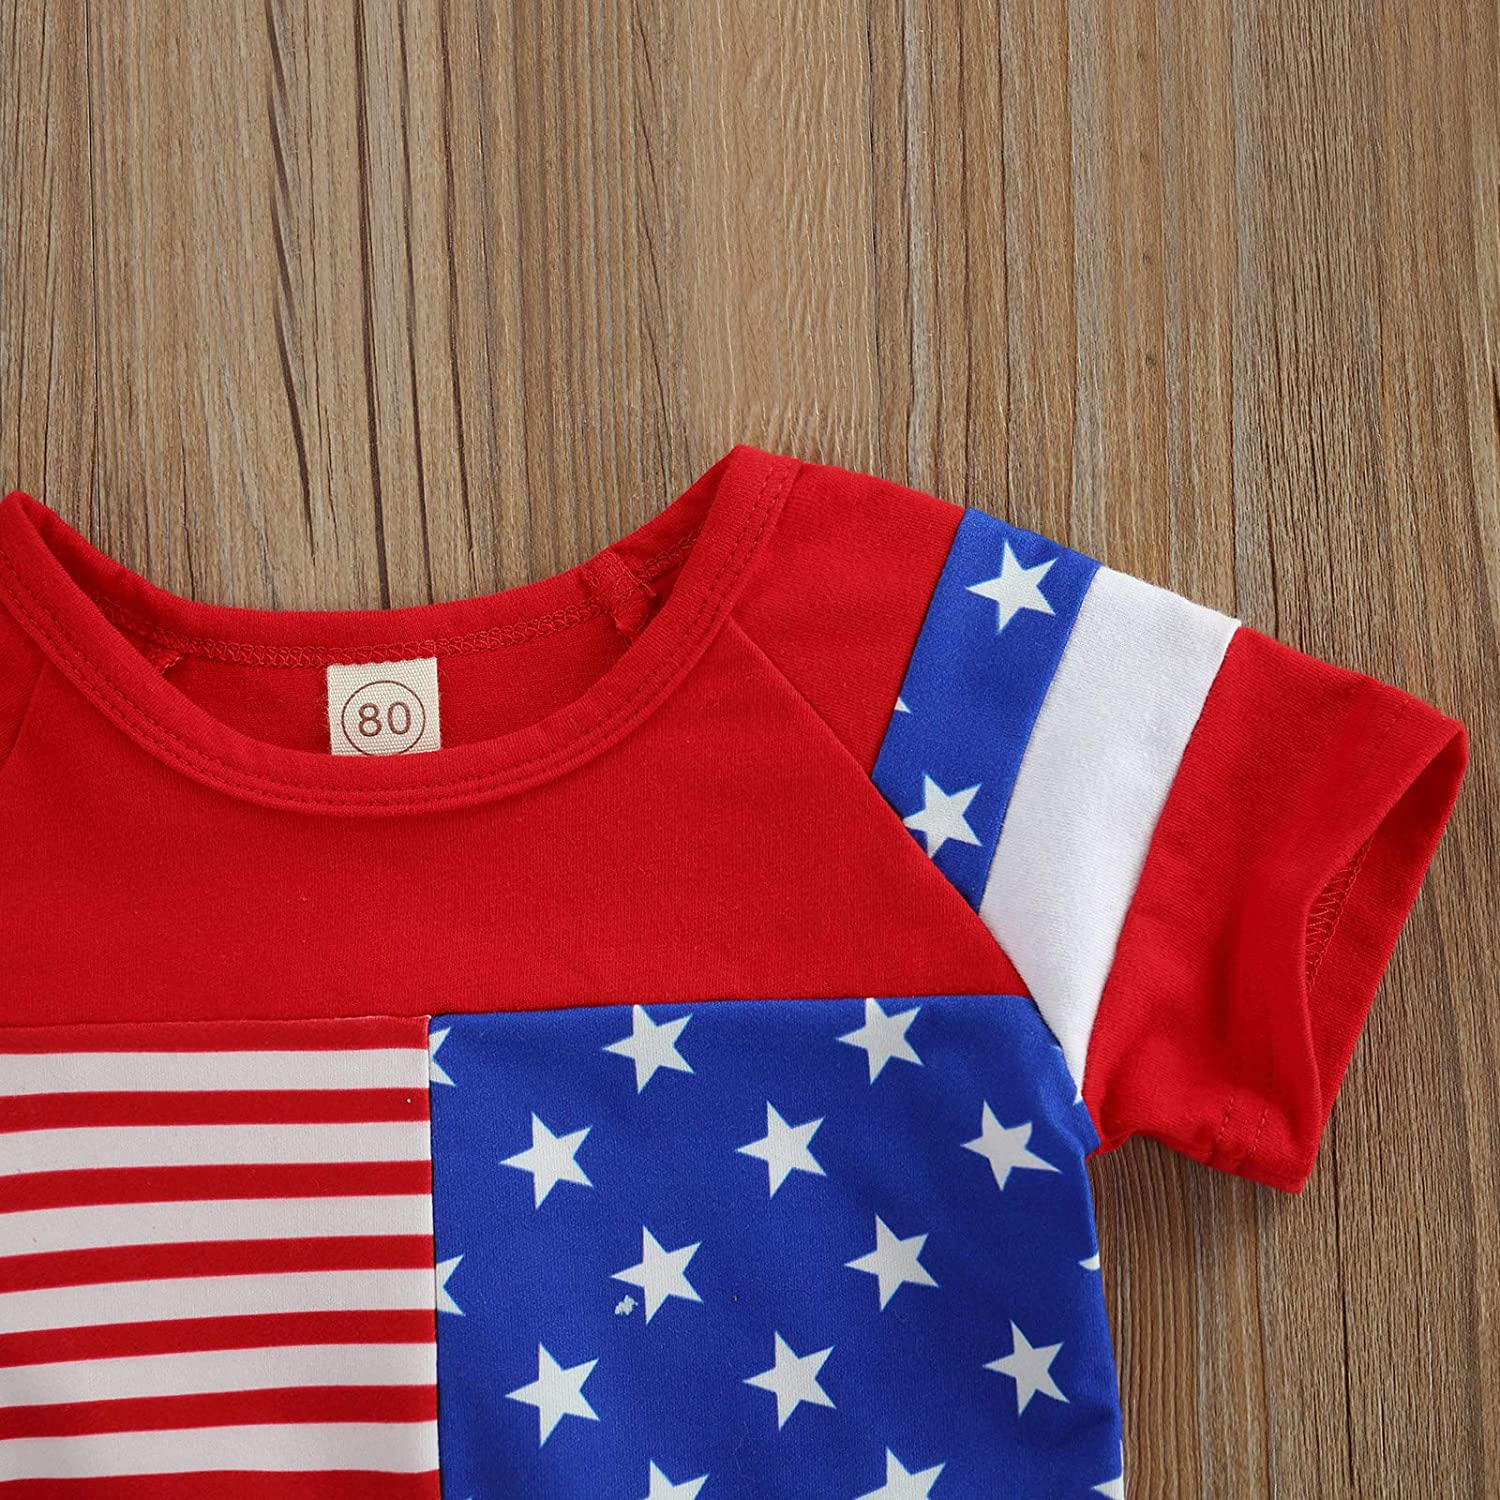 NvekeyBromn 4th of July Toddler Baby Boys Girl Clothes Sleeveless Top American Flag Short Sets Independence Day